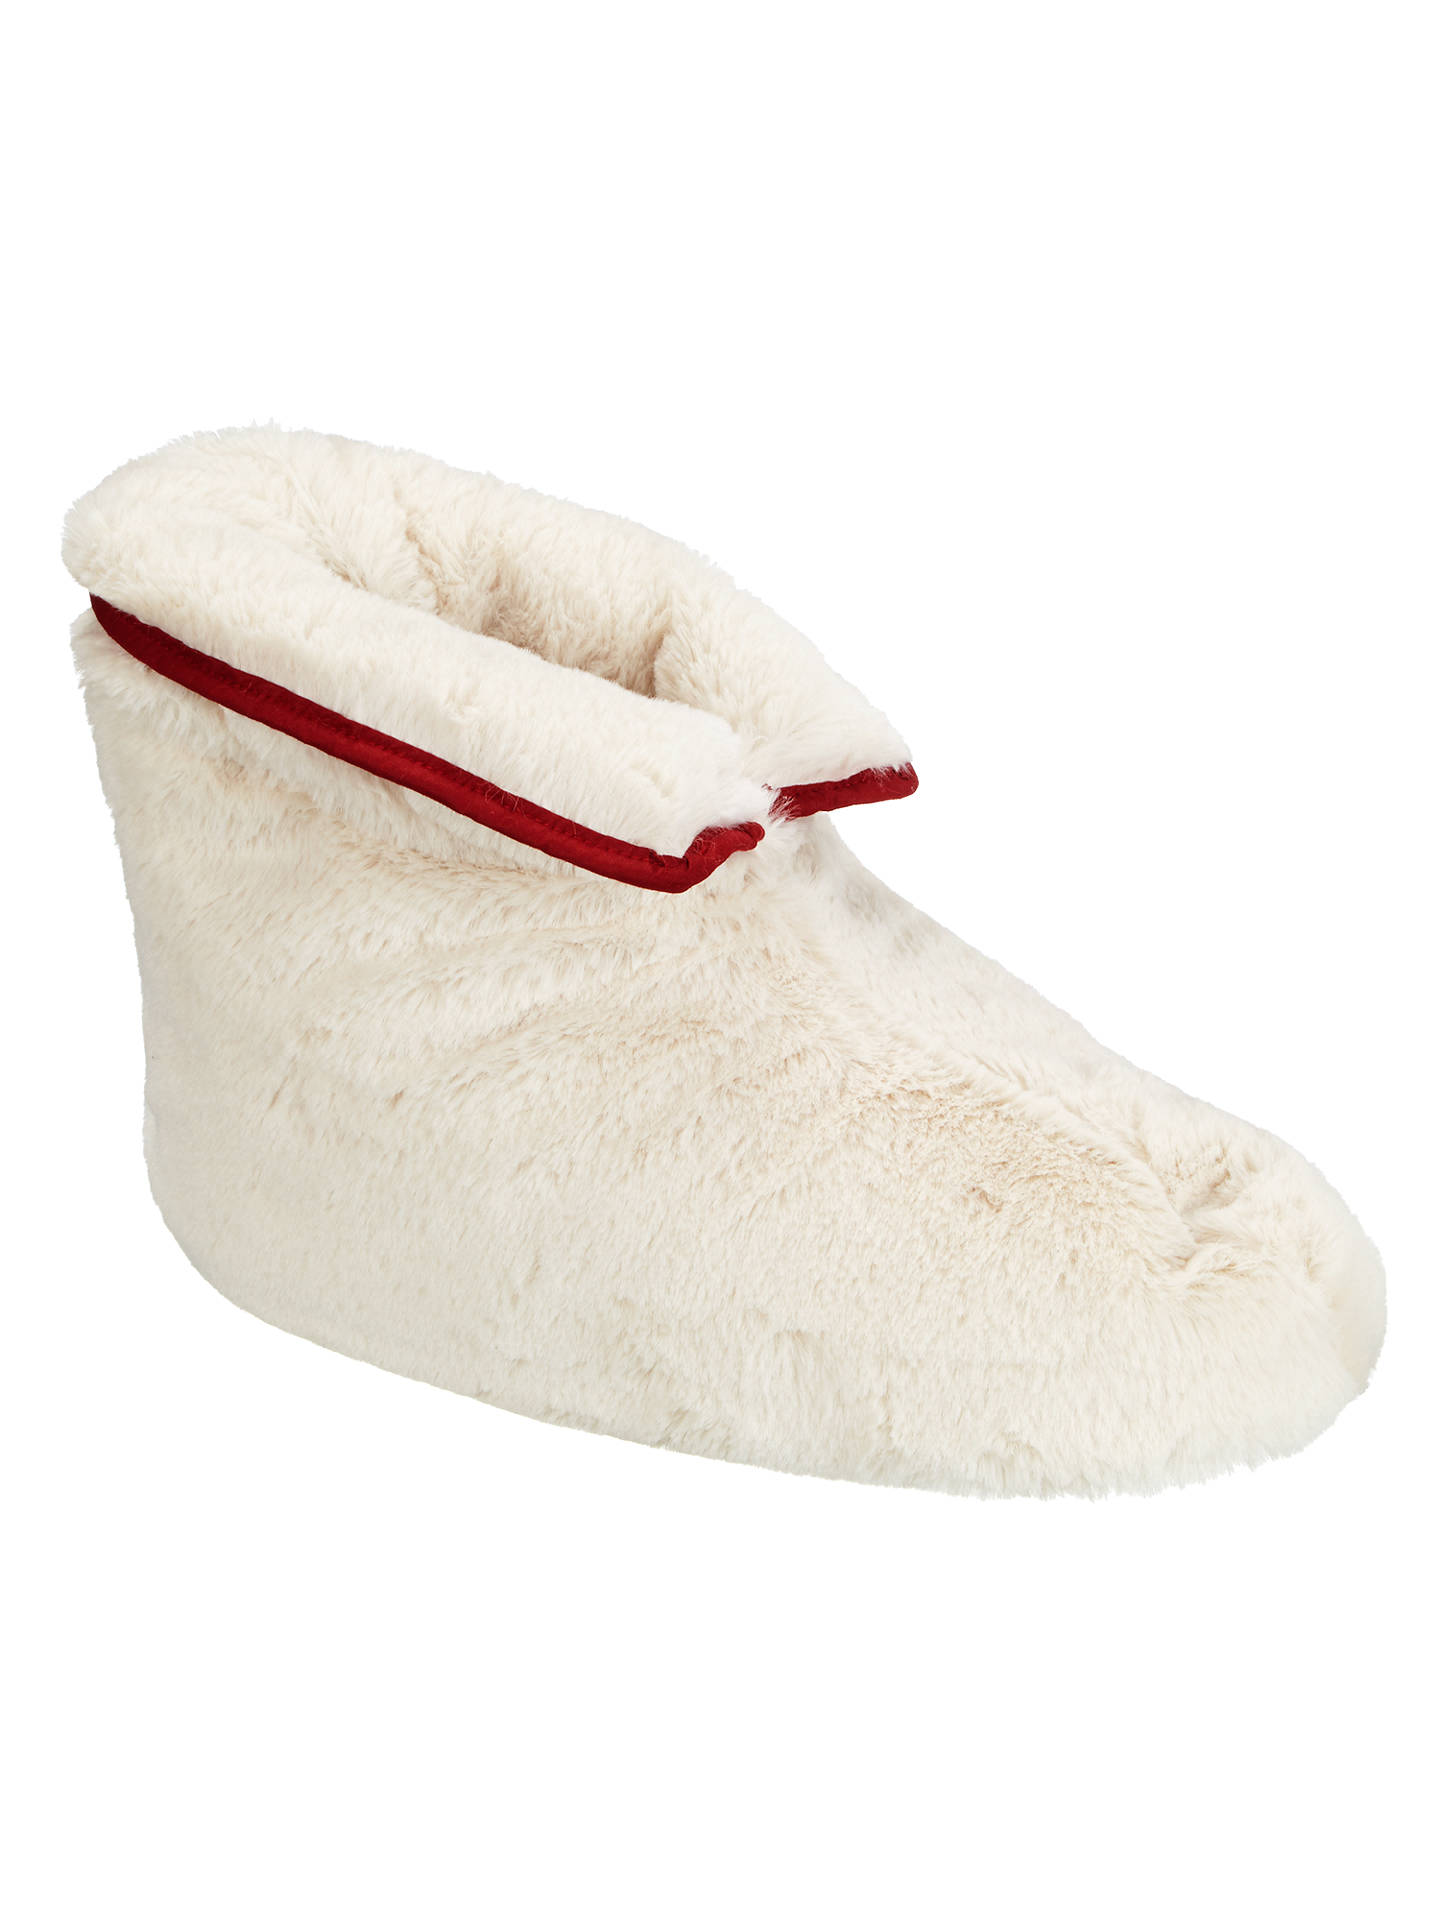 73c0cdc27d7e9 John Lewis Shearling Foot Duvet Slippers, Cream/Red at John Lewis ...